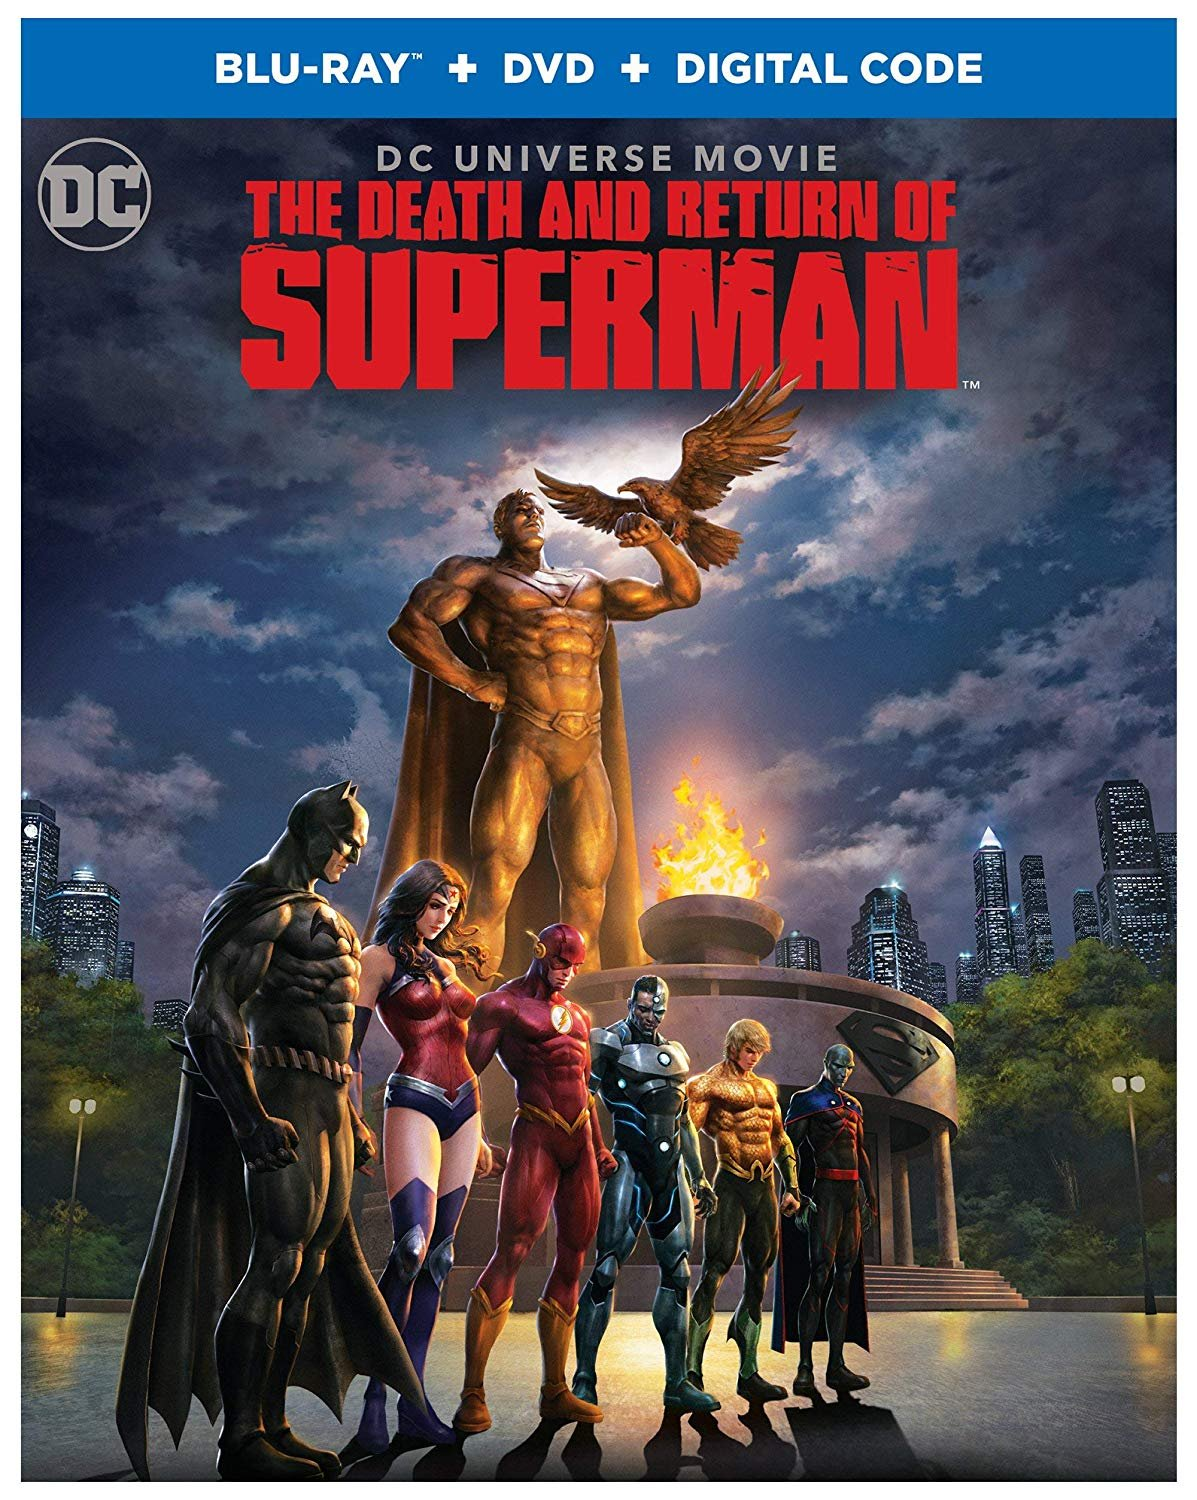 The Death and Return of Superman poster image